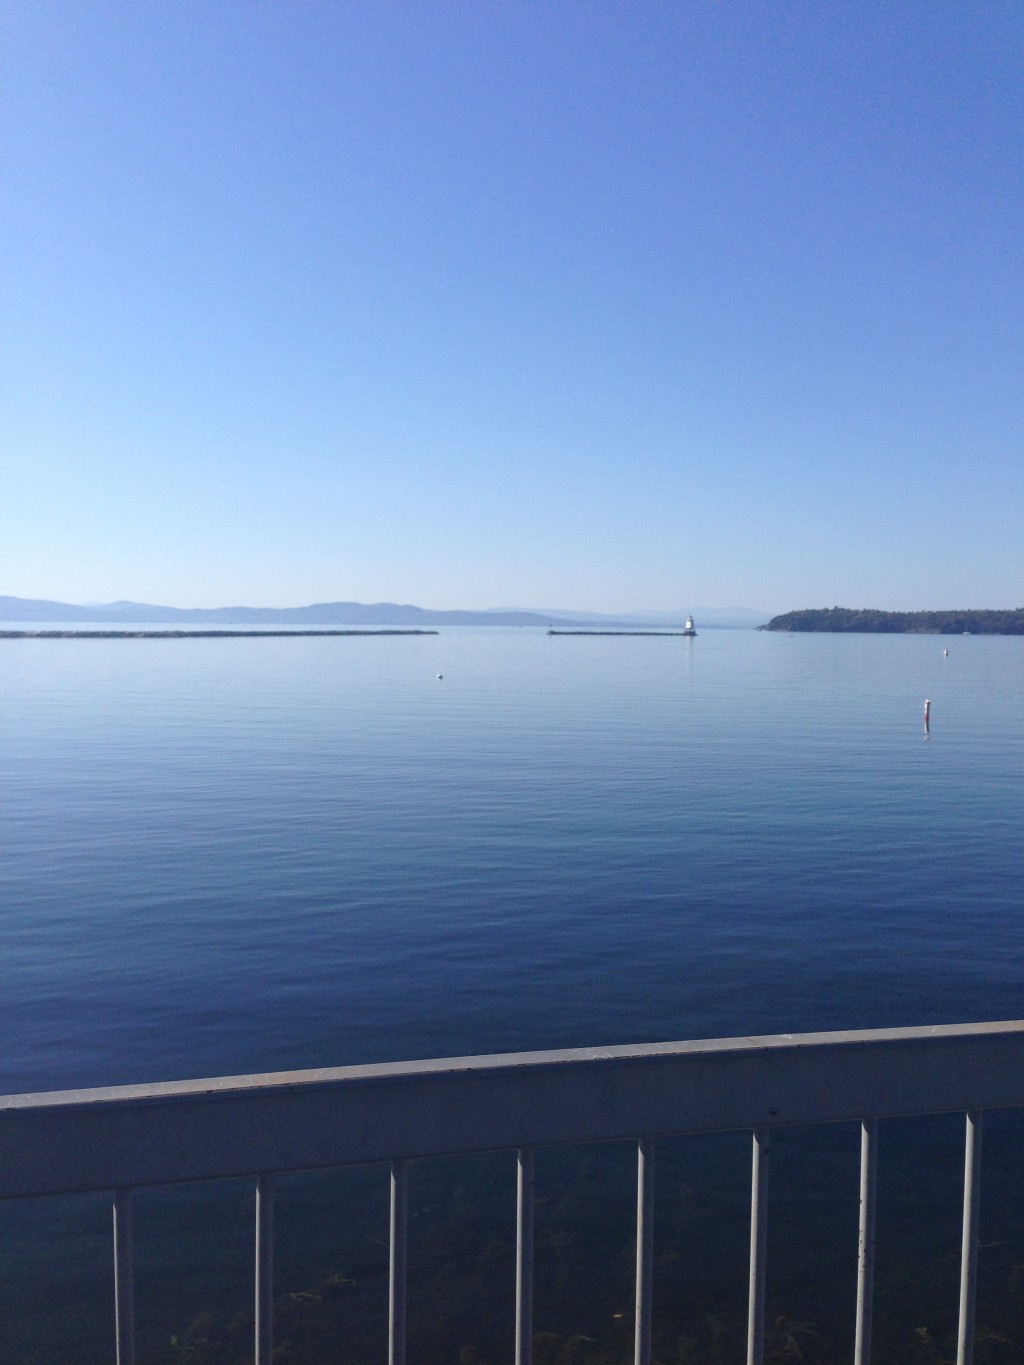 Cupcakes for Breakfast: Fall weekend in Stowe Vermont - lake Champlain